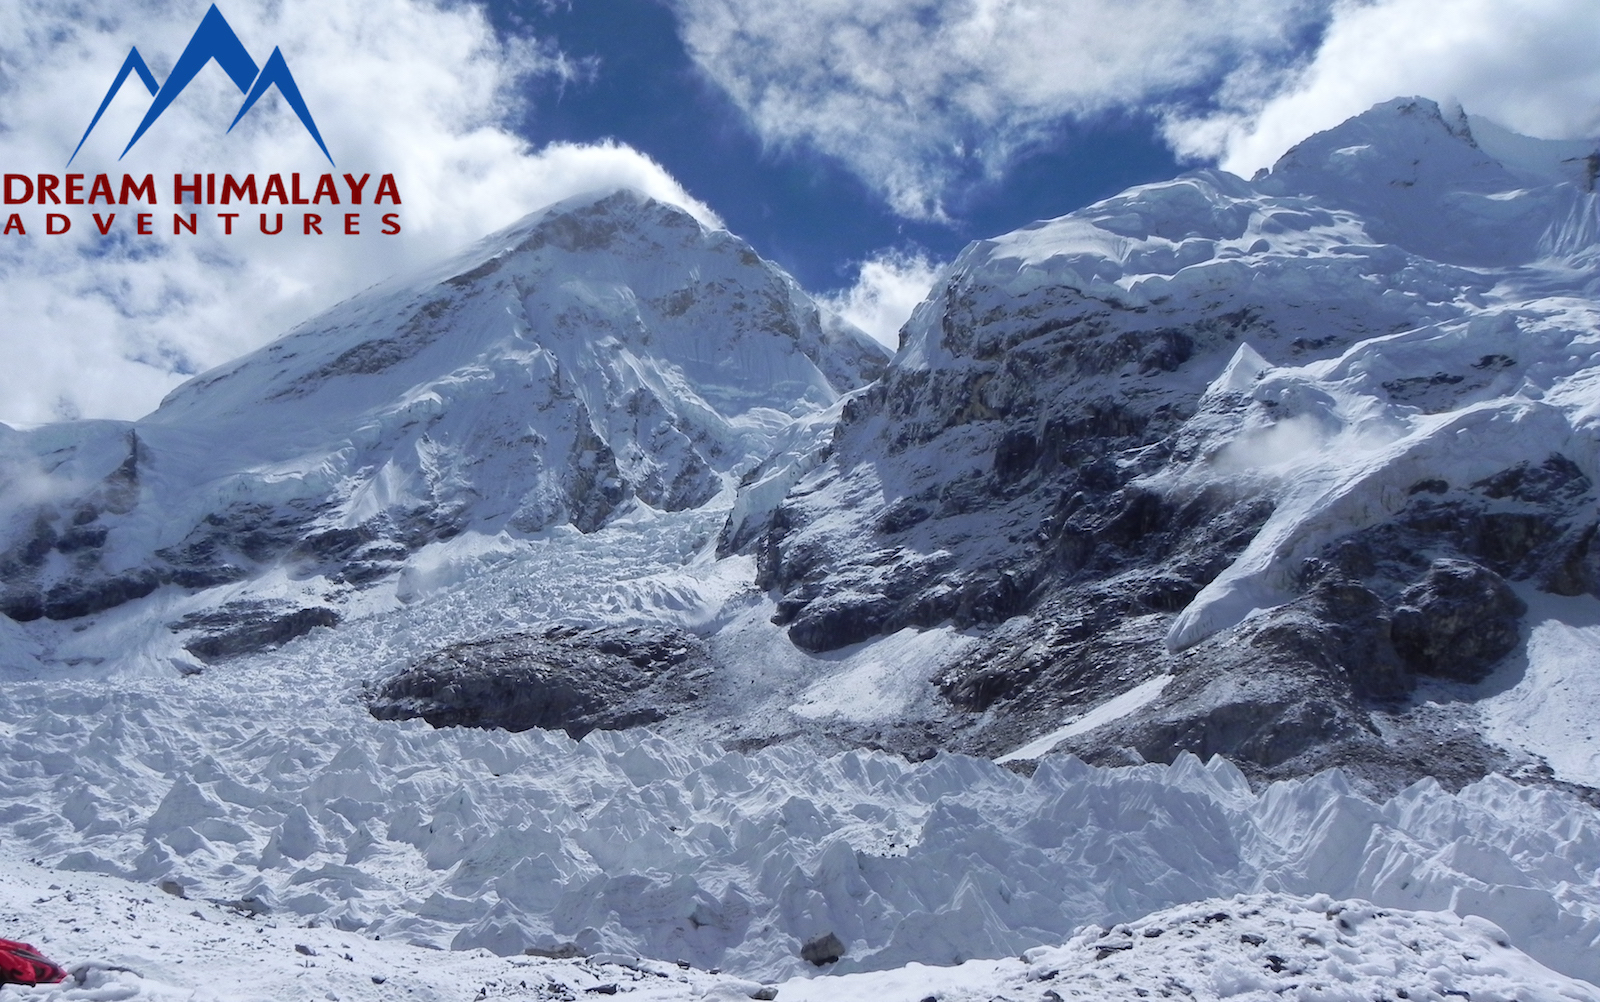 Lhola and Khumbu Ice Fall